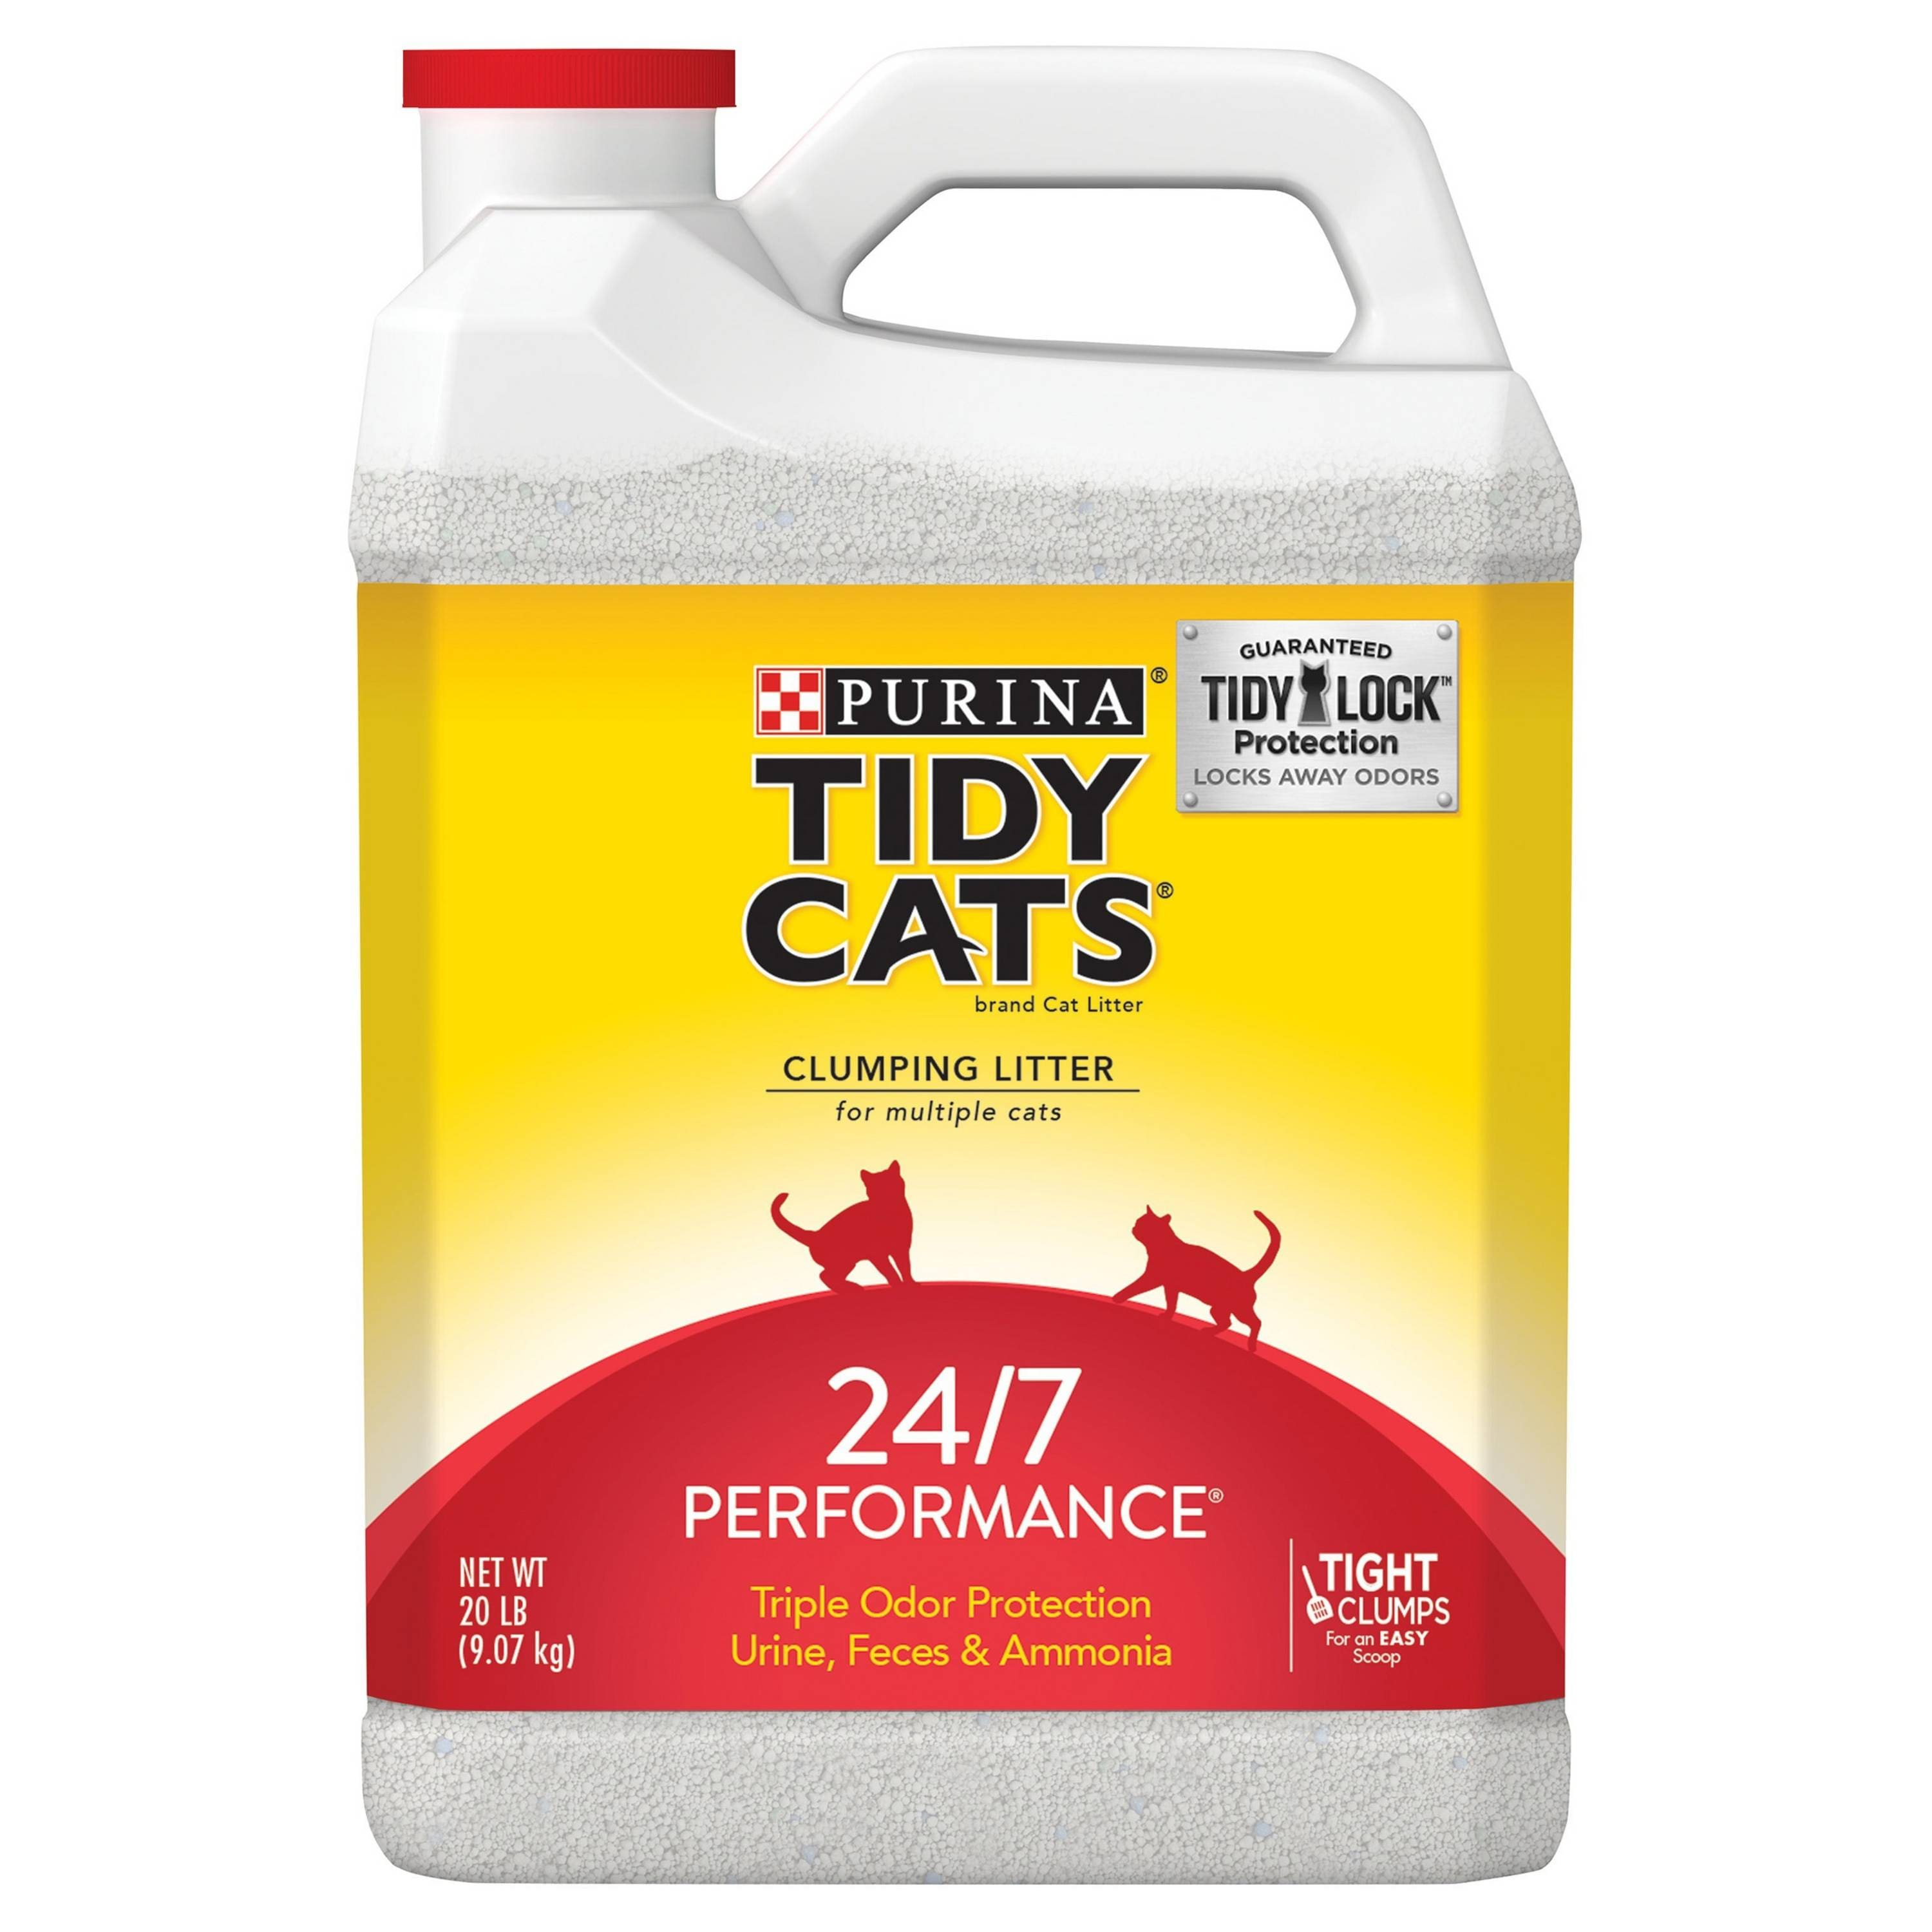 Tidy Cats Clumping Cat Litter 2 x 20lb Jugs [40lbs total] for $9.24 with 2nd Subscription Delivery +Tax -REDCard